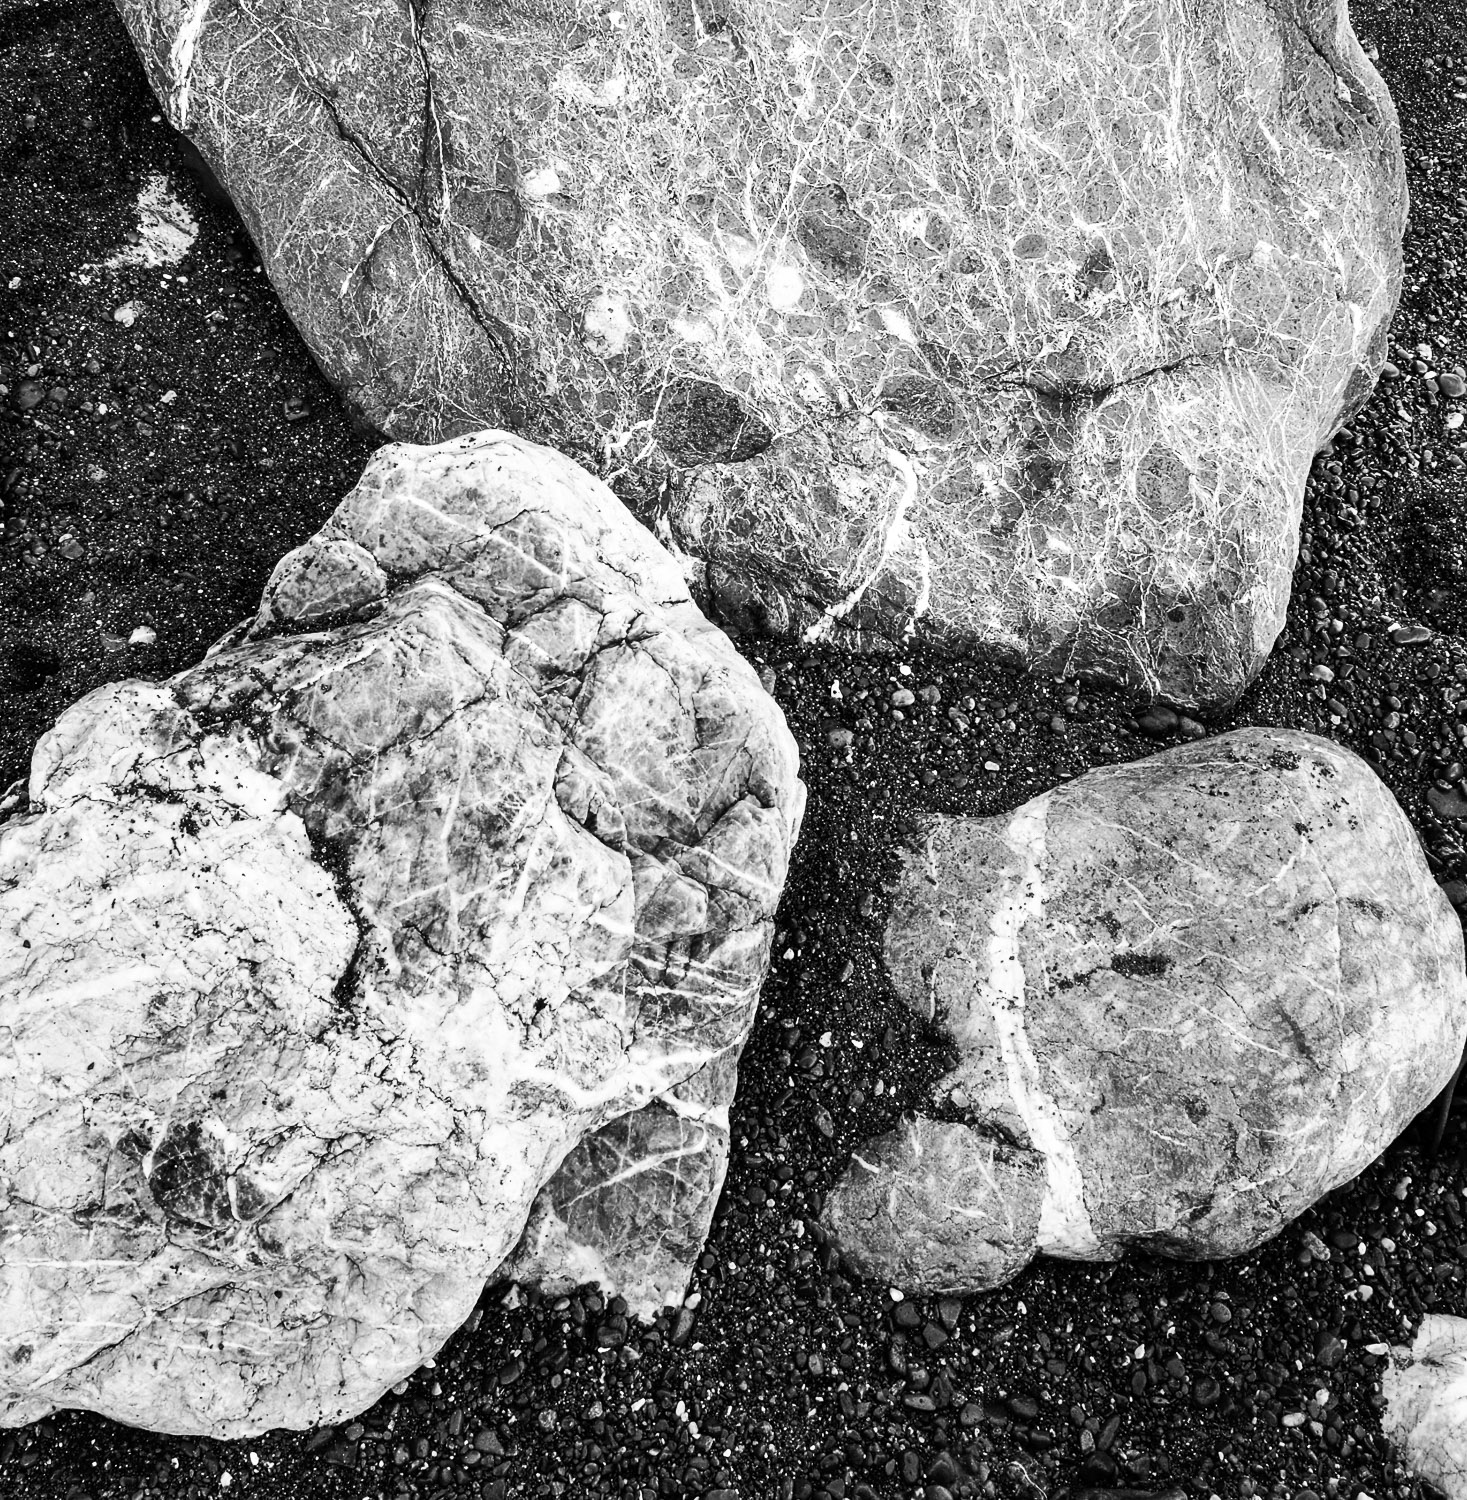 Sand and Rocks, Rockaway Beach, CA, 2006